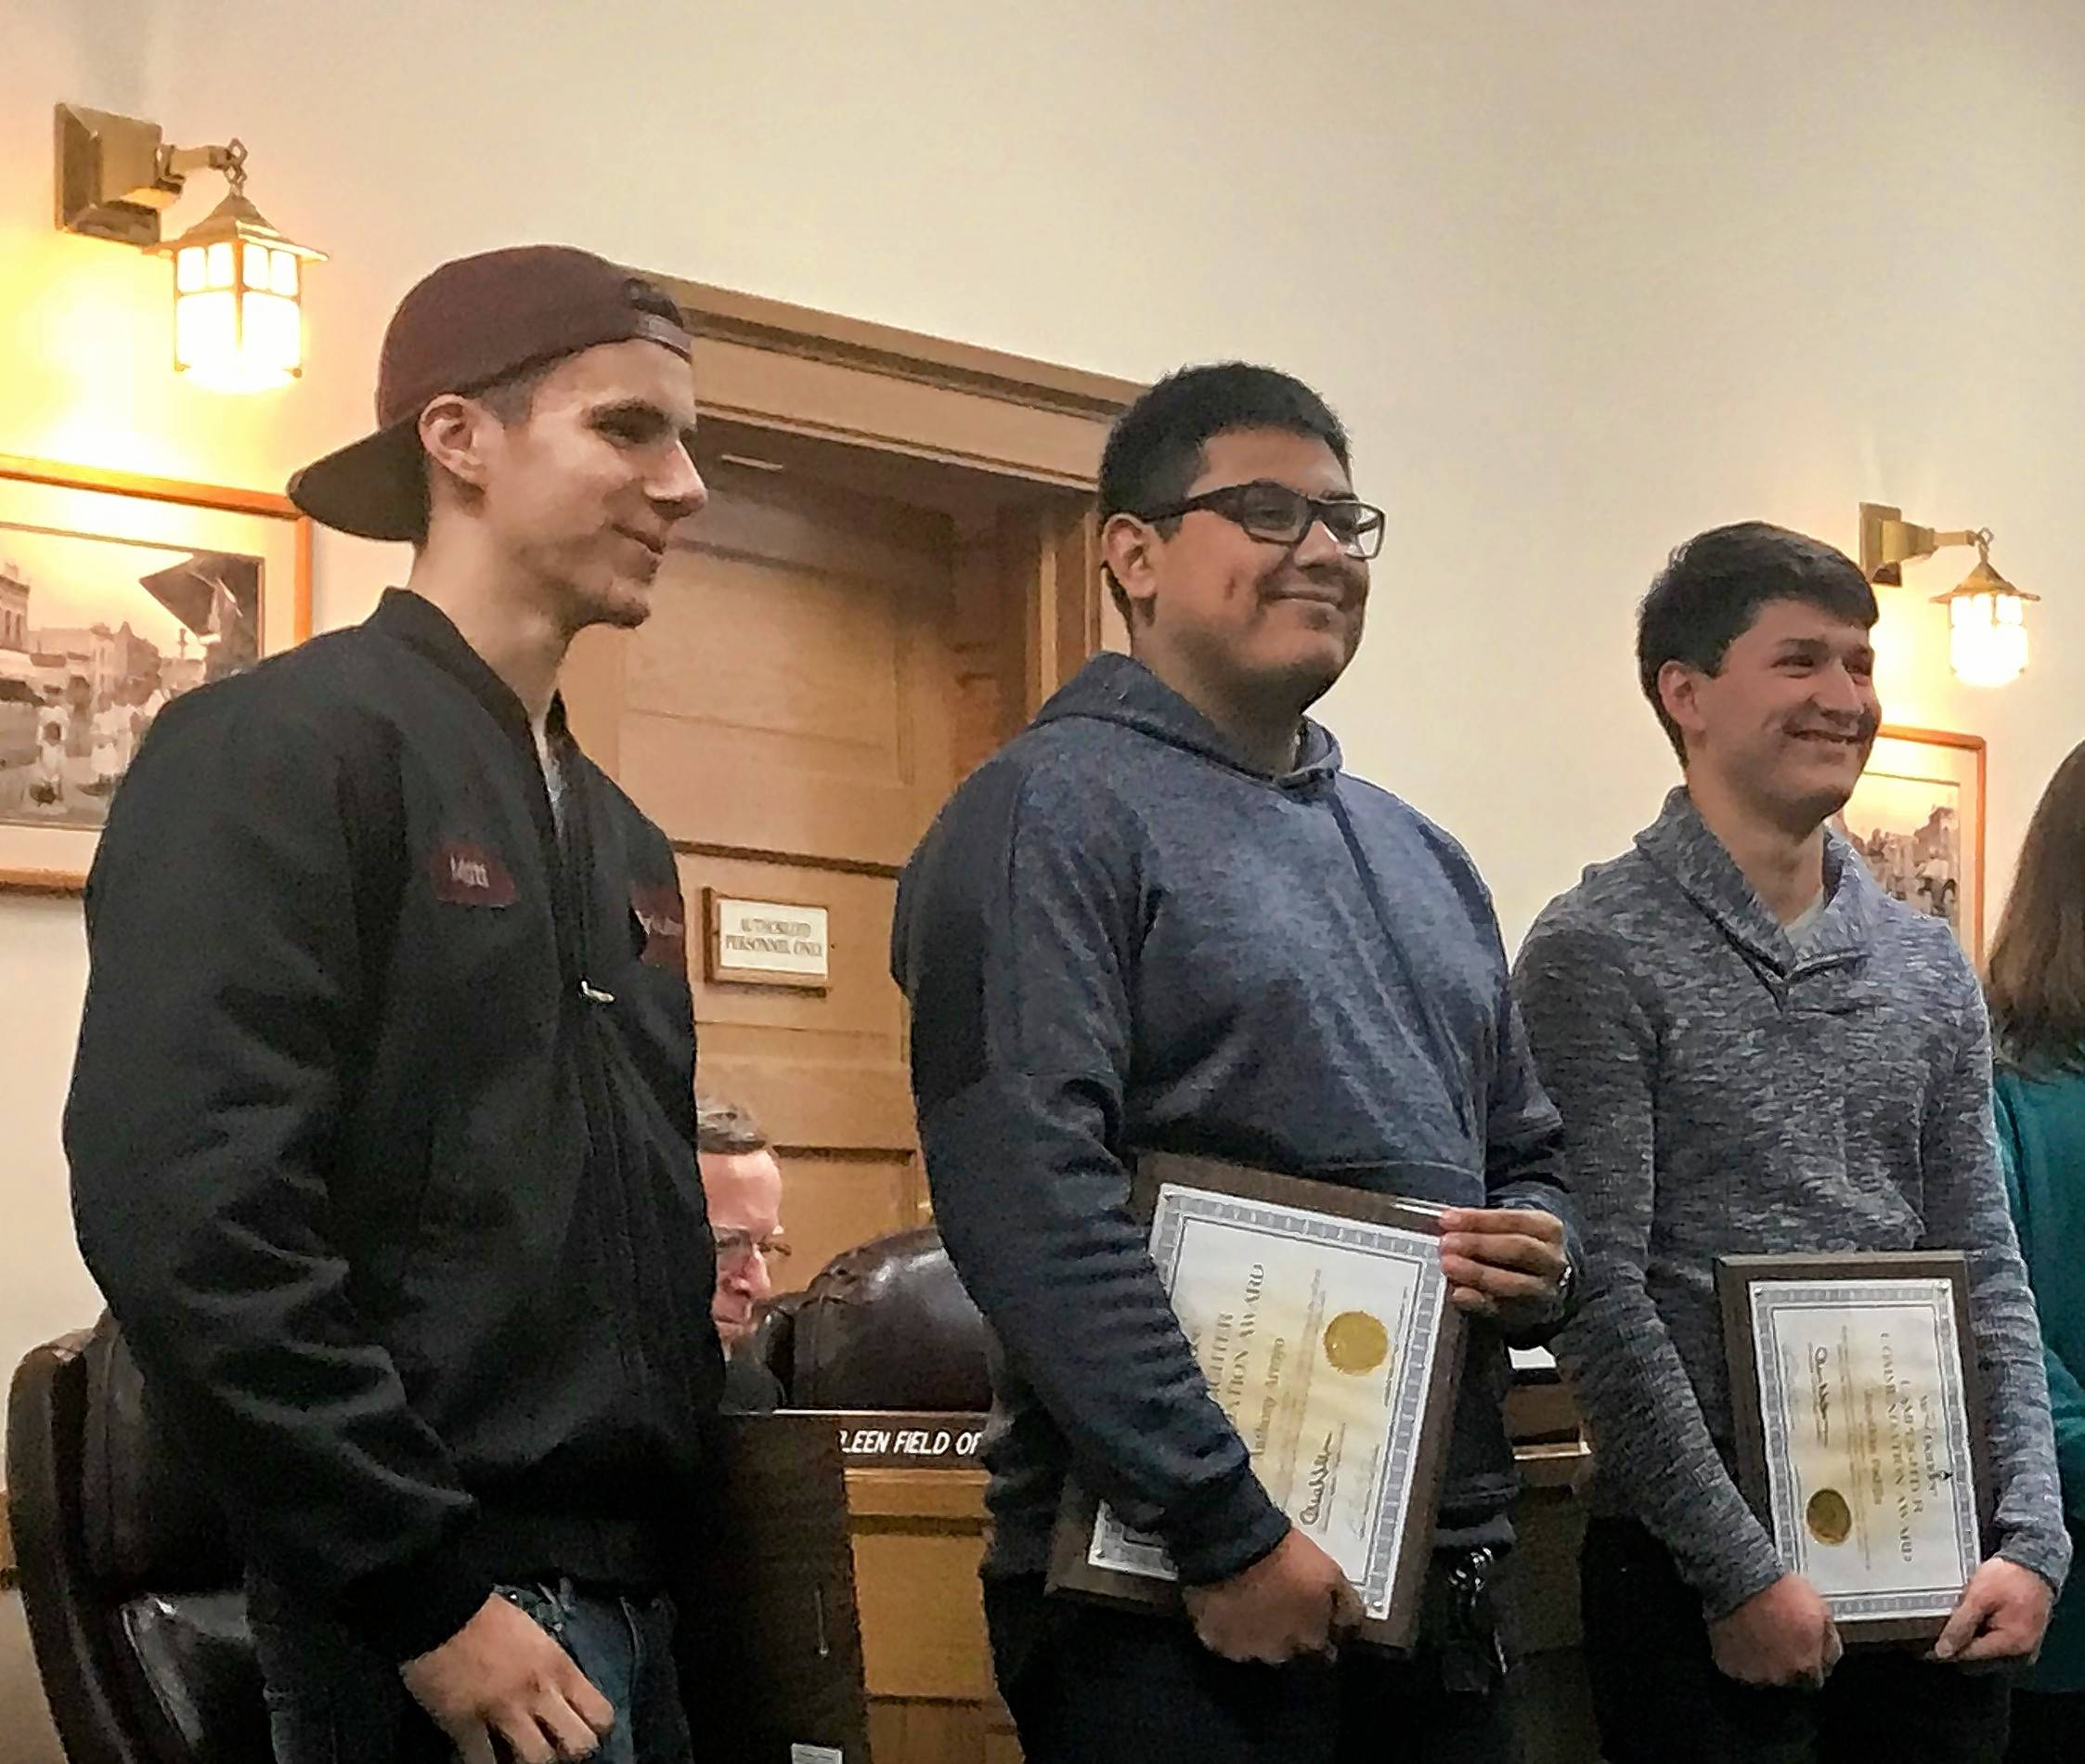 When a baby fell out of a moving vehicle in West Dundee last month, 17-year-old Matthew Gillespie, left, called 911, while Anthony Arroyo, 18, ran into the intersection to care for the child, and Jonathan Padilla, 17, chased after the vehicle responsible.